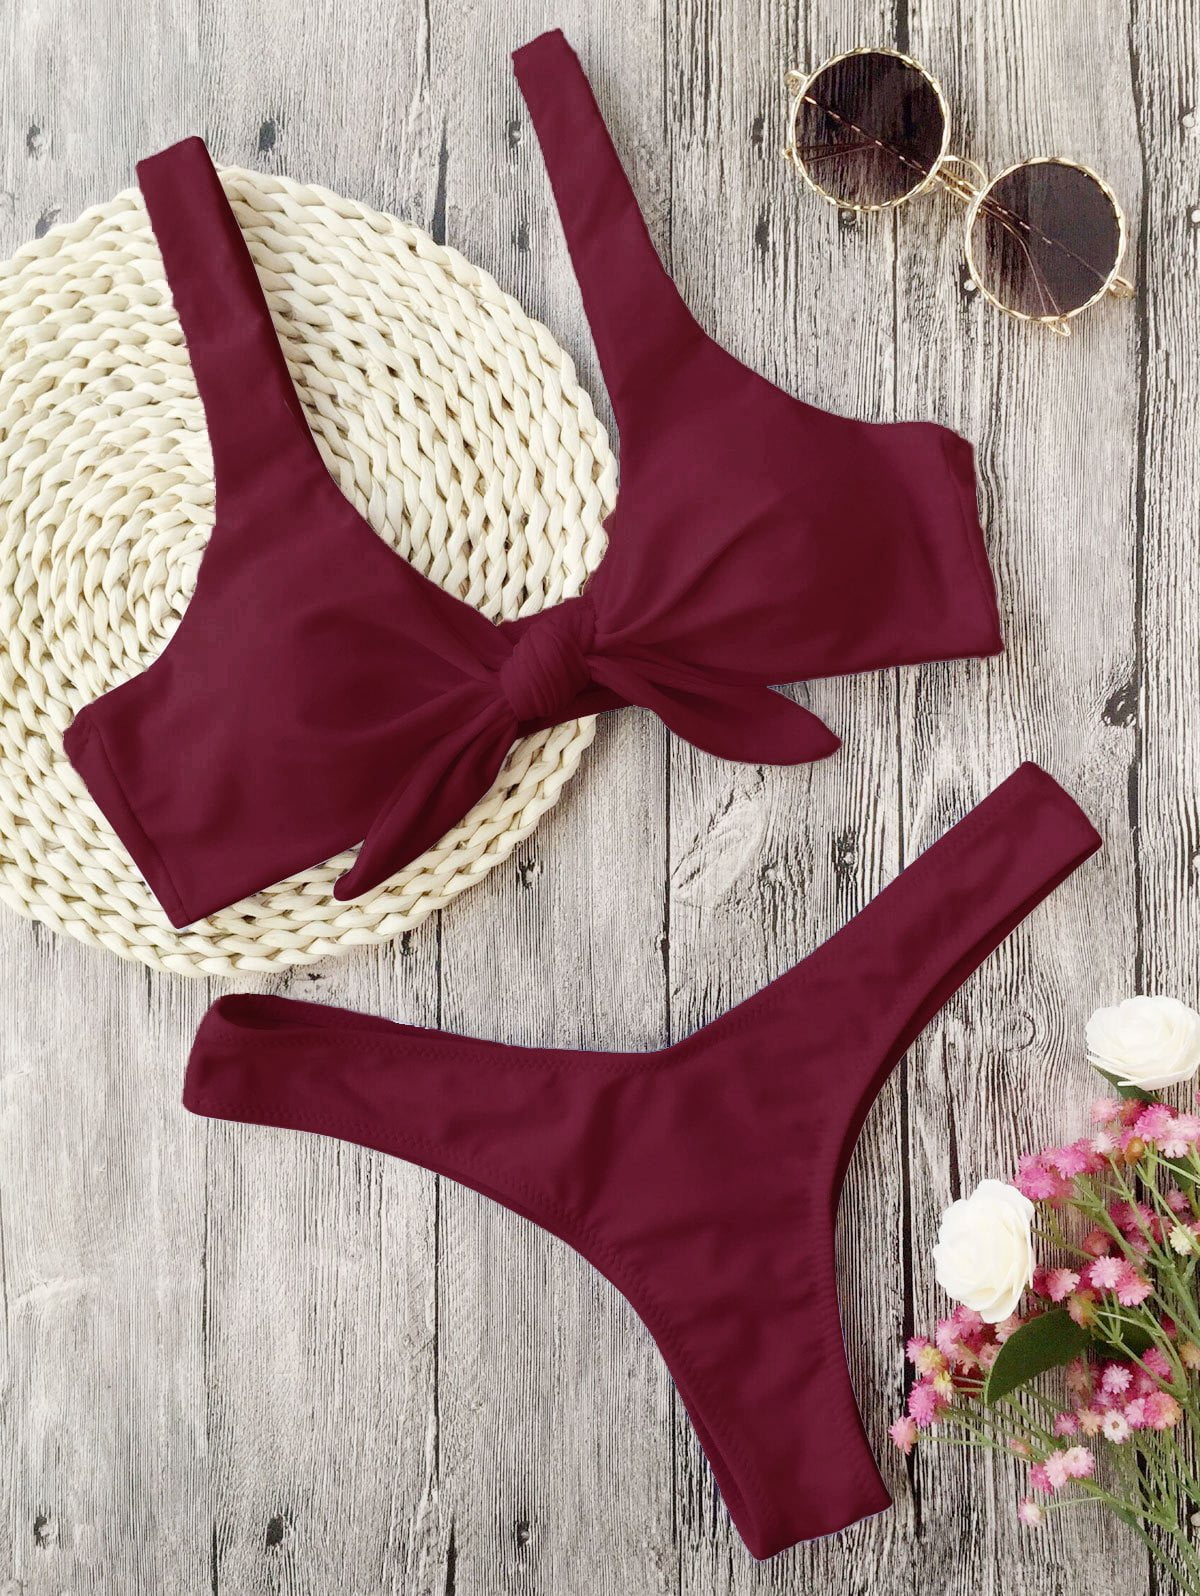 Swimsuit New Arrival Women Knotted Padded Thong Bikini Mid Waisted Solid Color Scoop Neck Bikini Beach Swimwear-Bottoms-SheSimplyShops